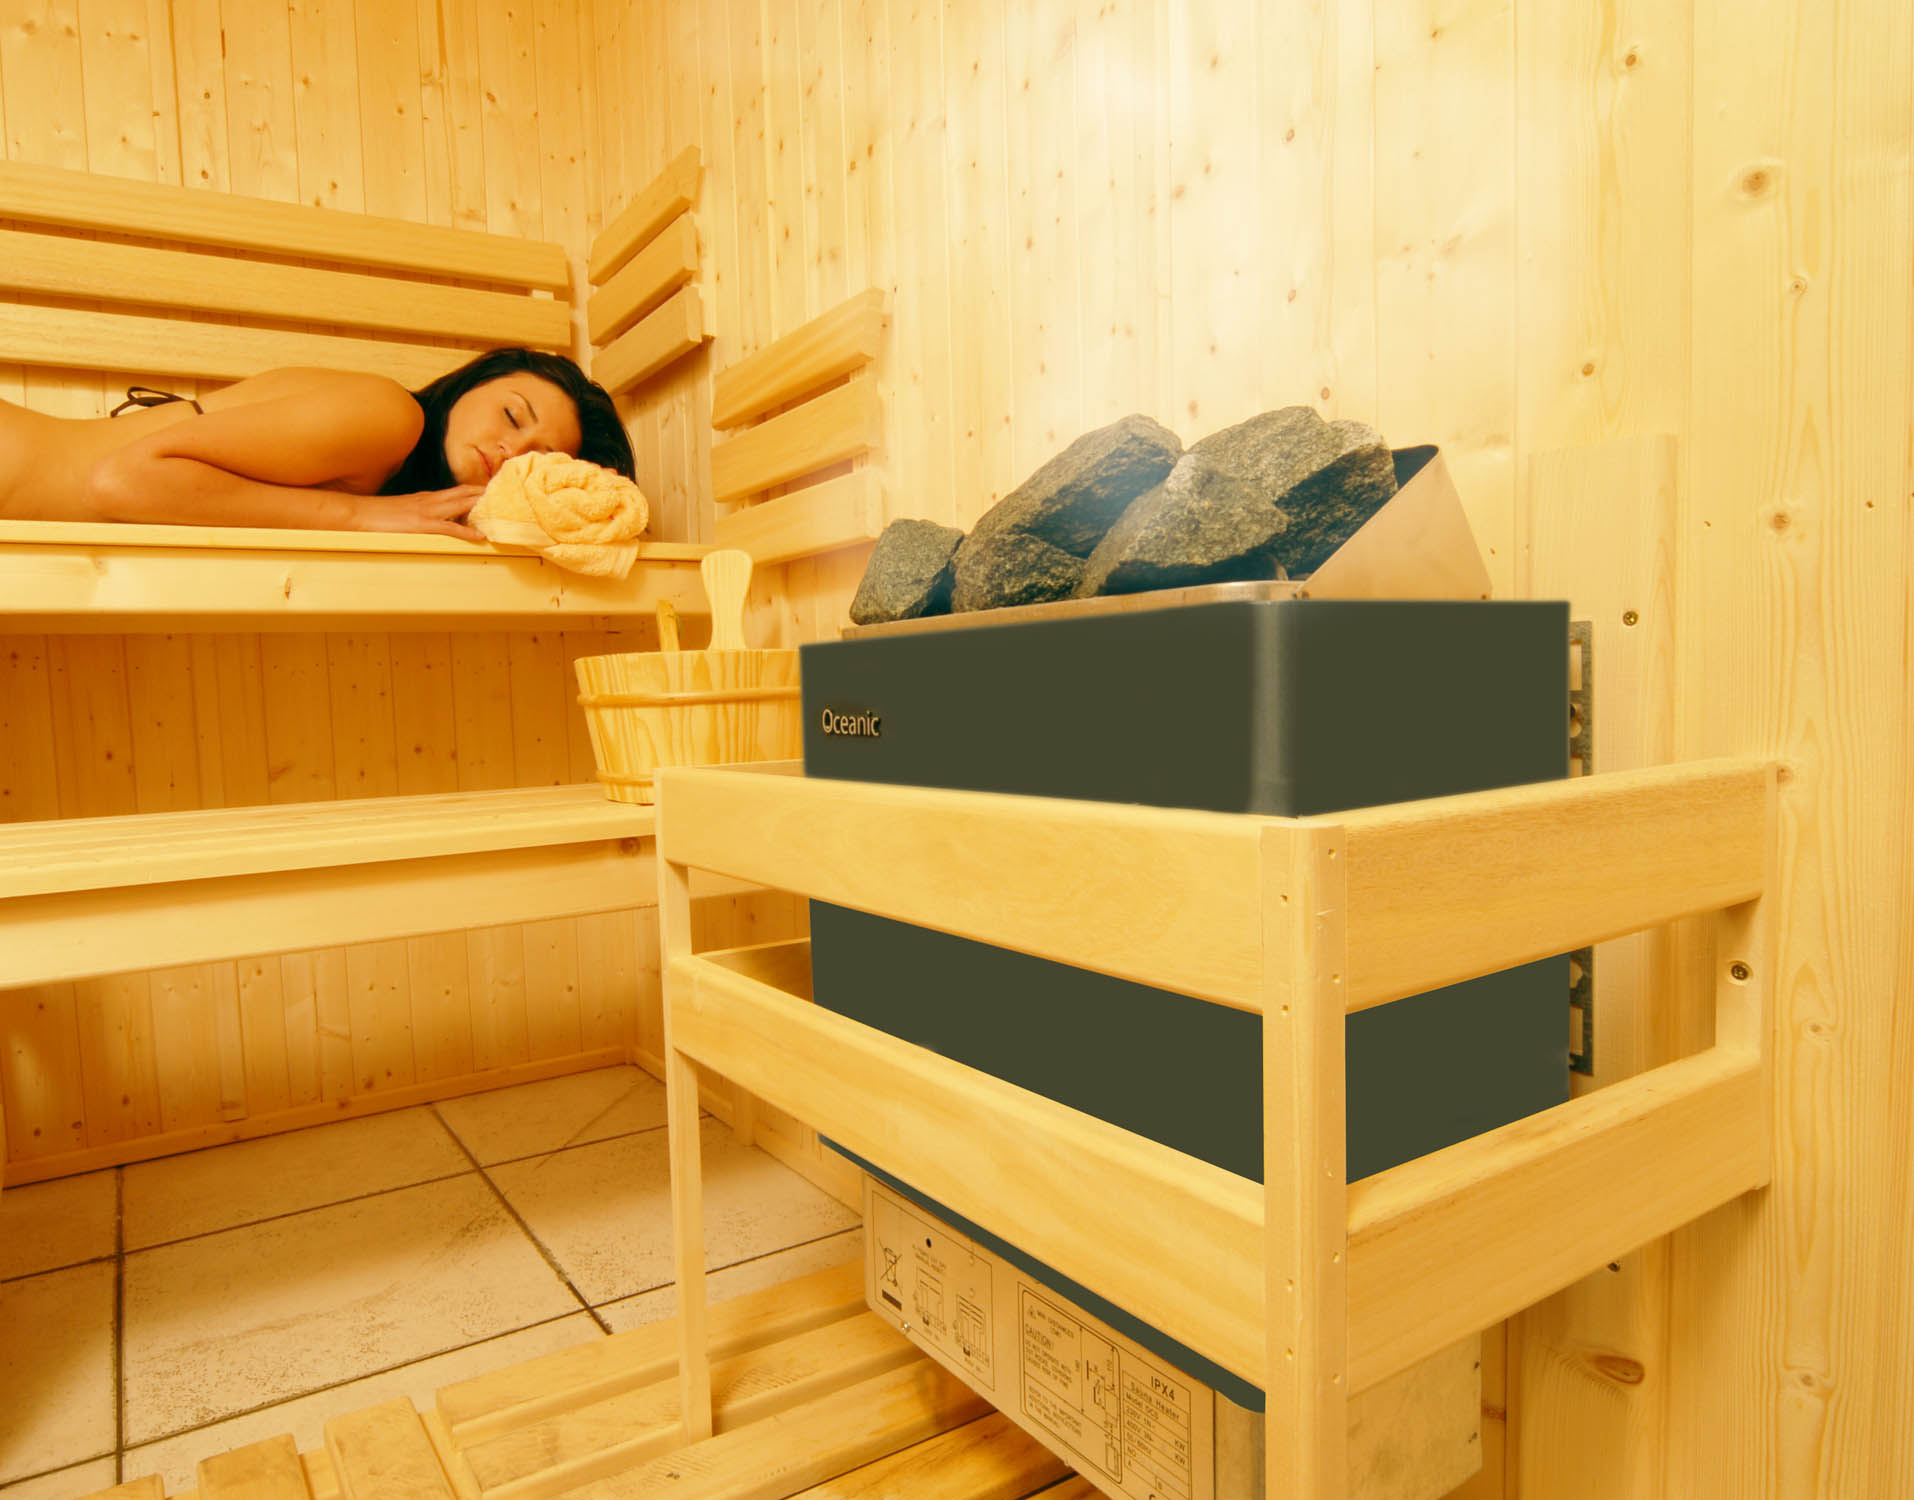 Oceanic Finnish Sauna Home OCSB Heater